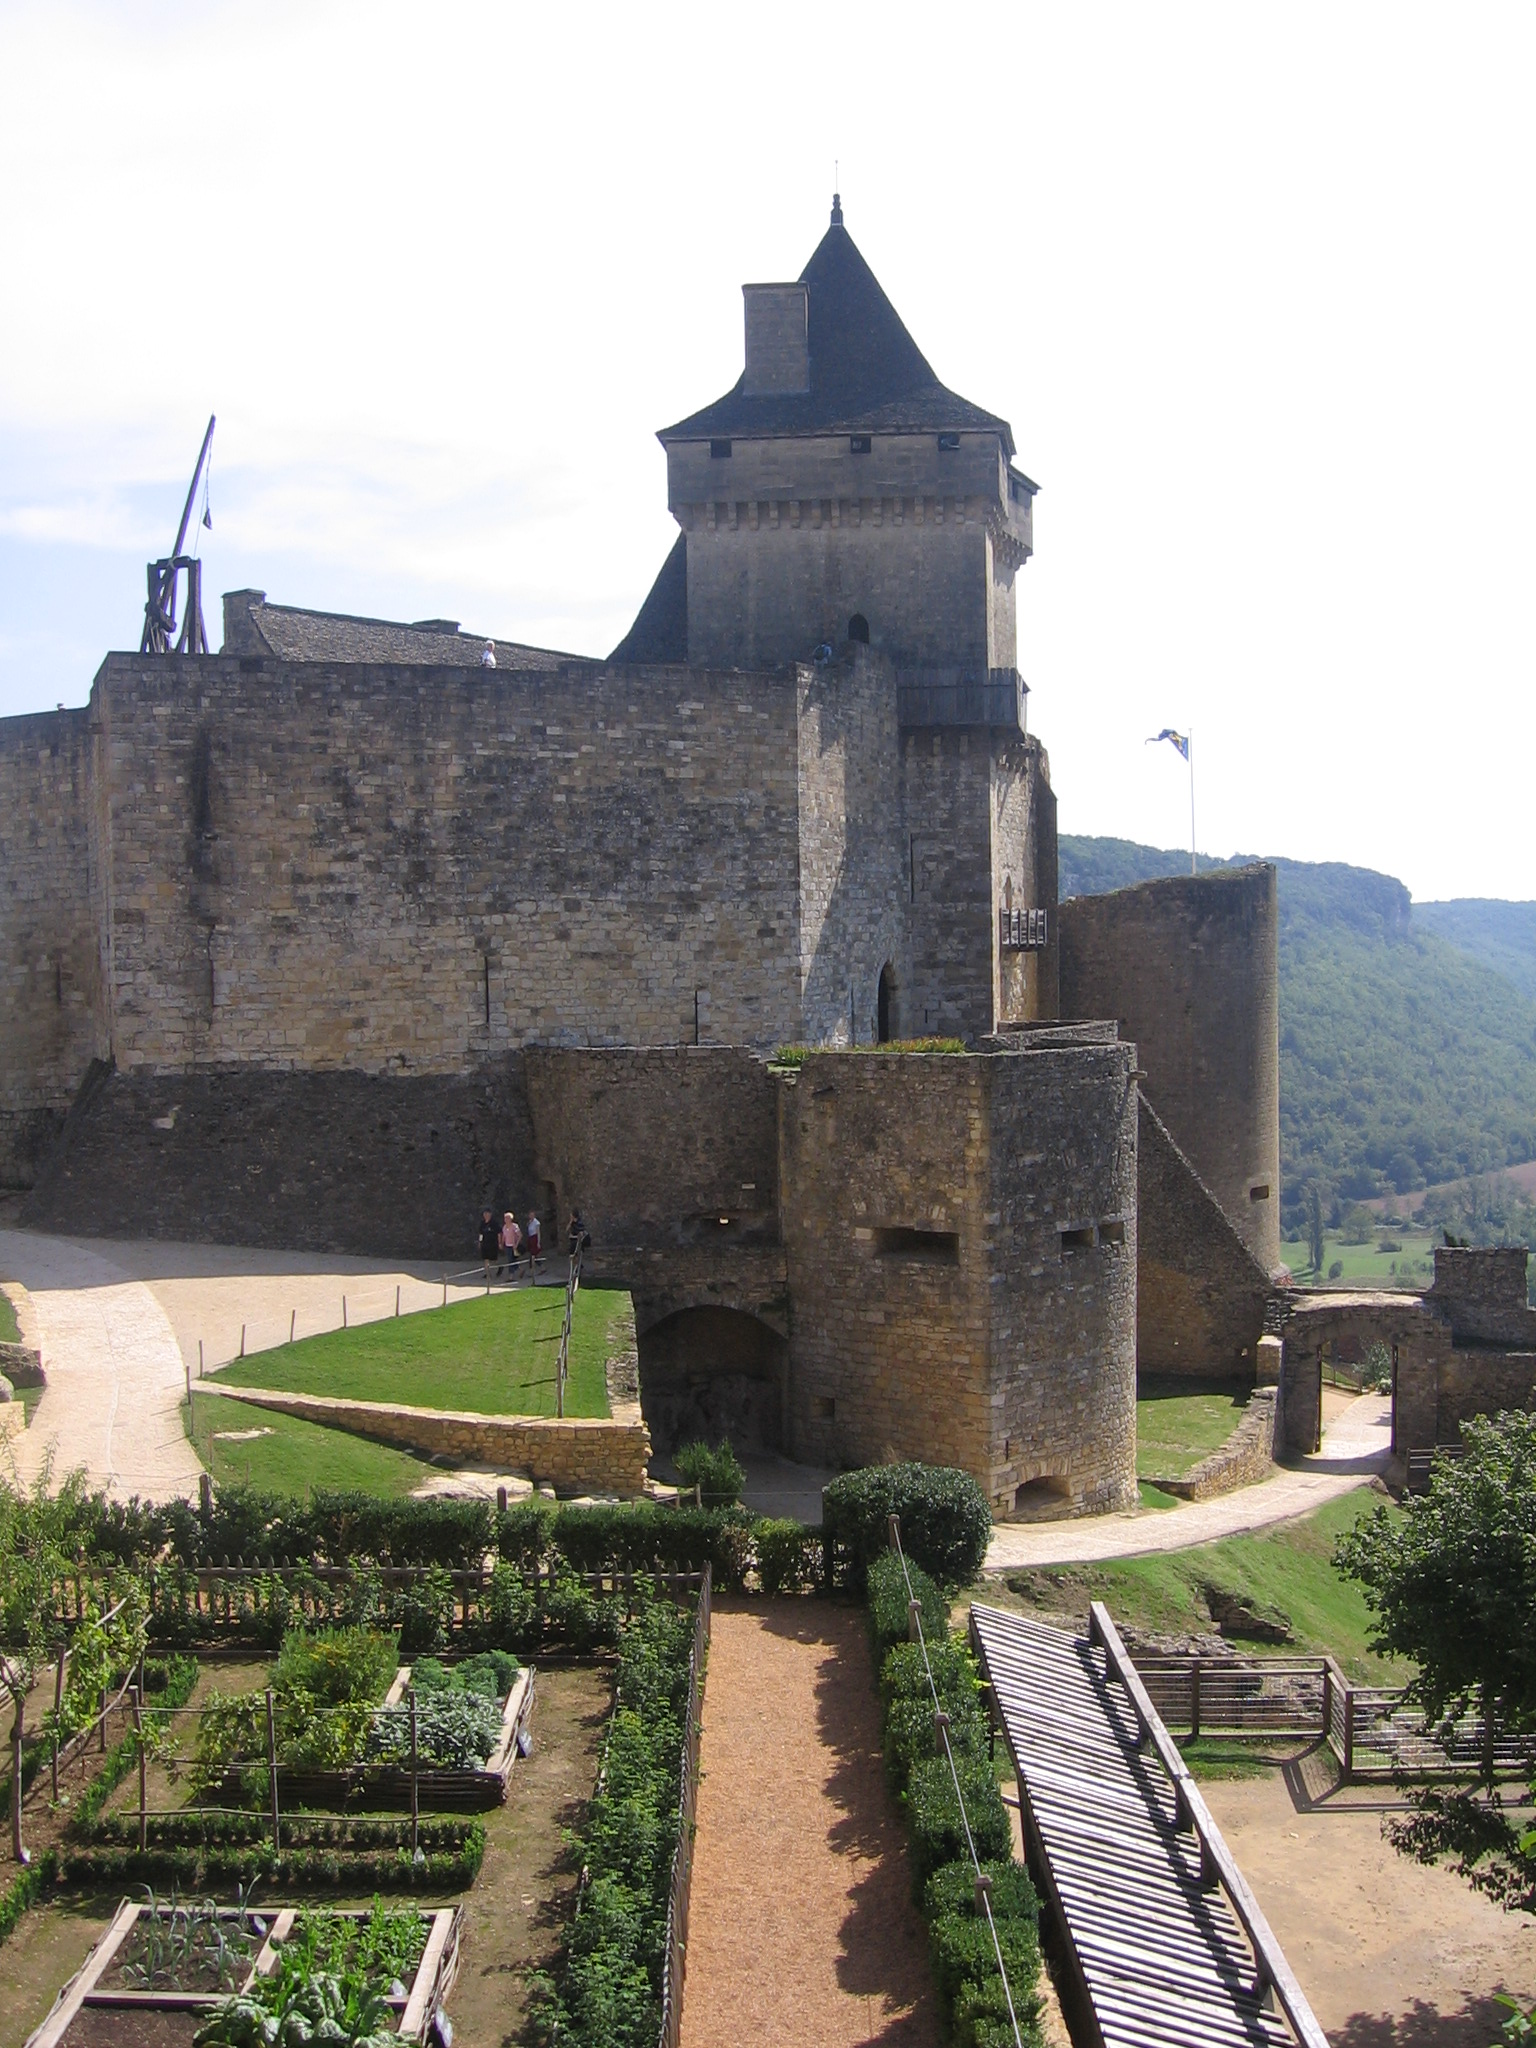 http://www.pics4learning.com/catalog/0/026castelnaud09.jpg